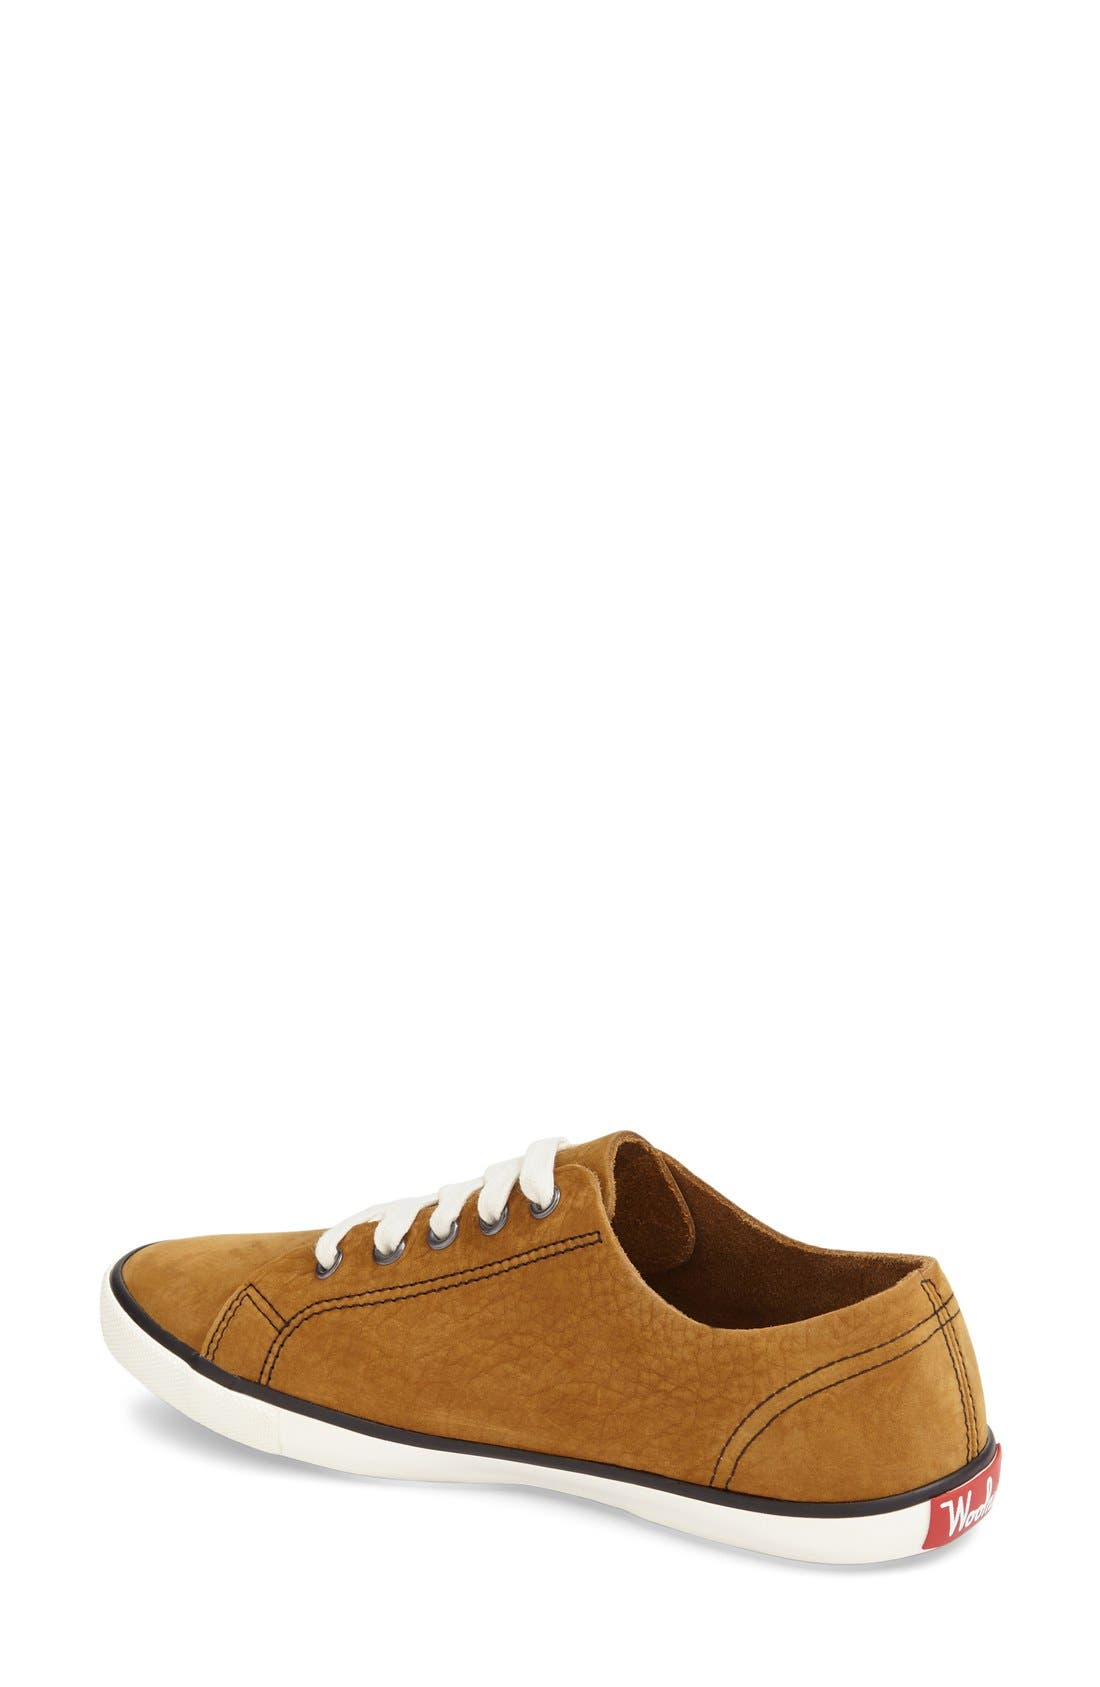 'Strand' Low-Top Sneaker,                             Alternate thumbnail 2, color,                             Toasty Nubuck